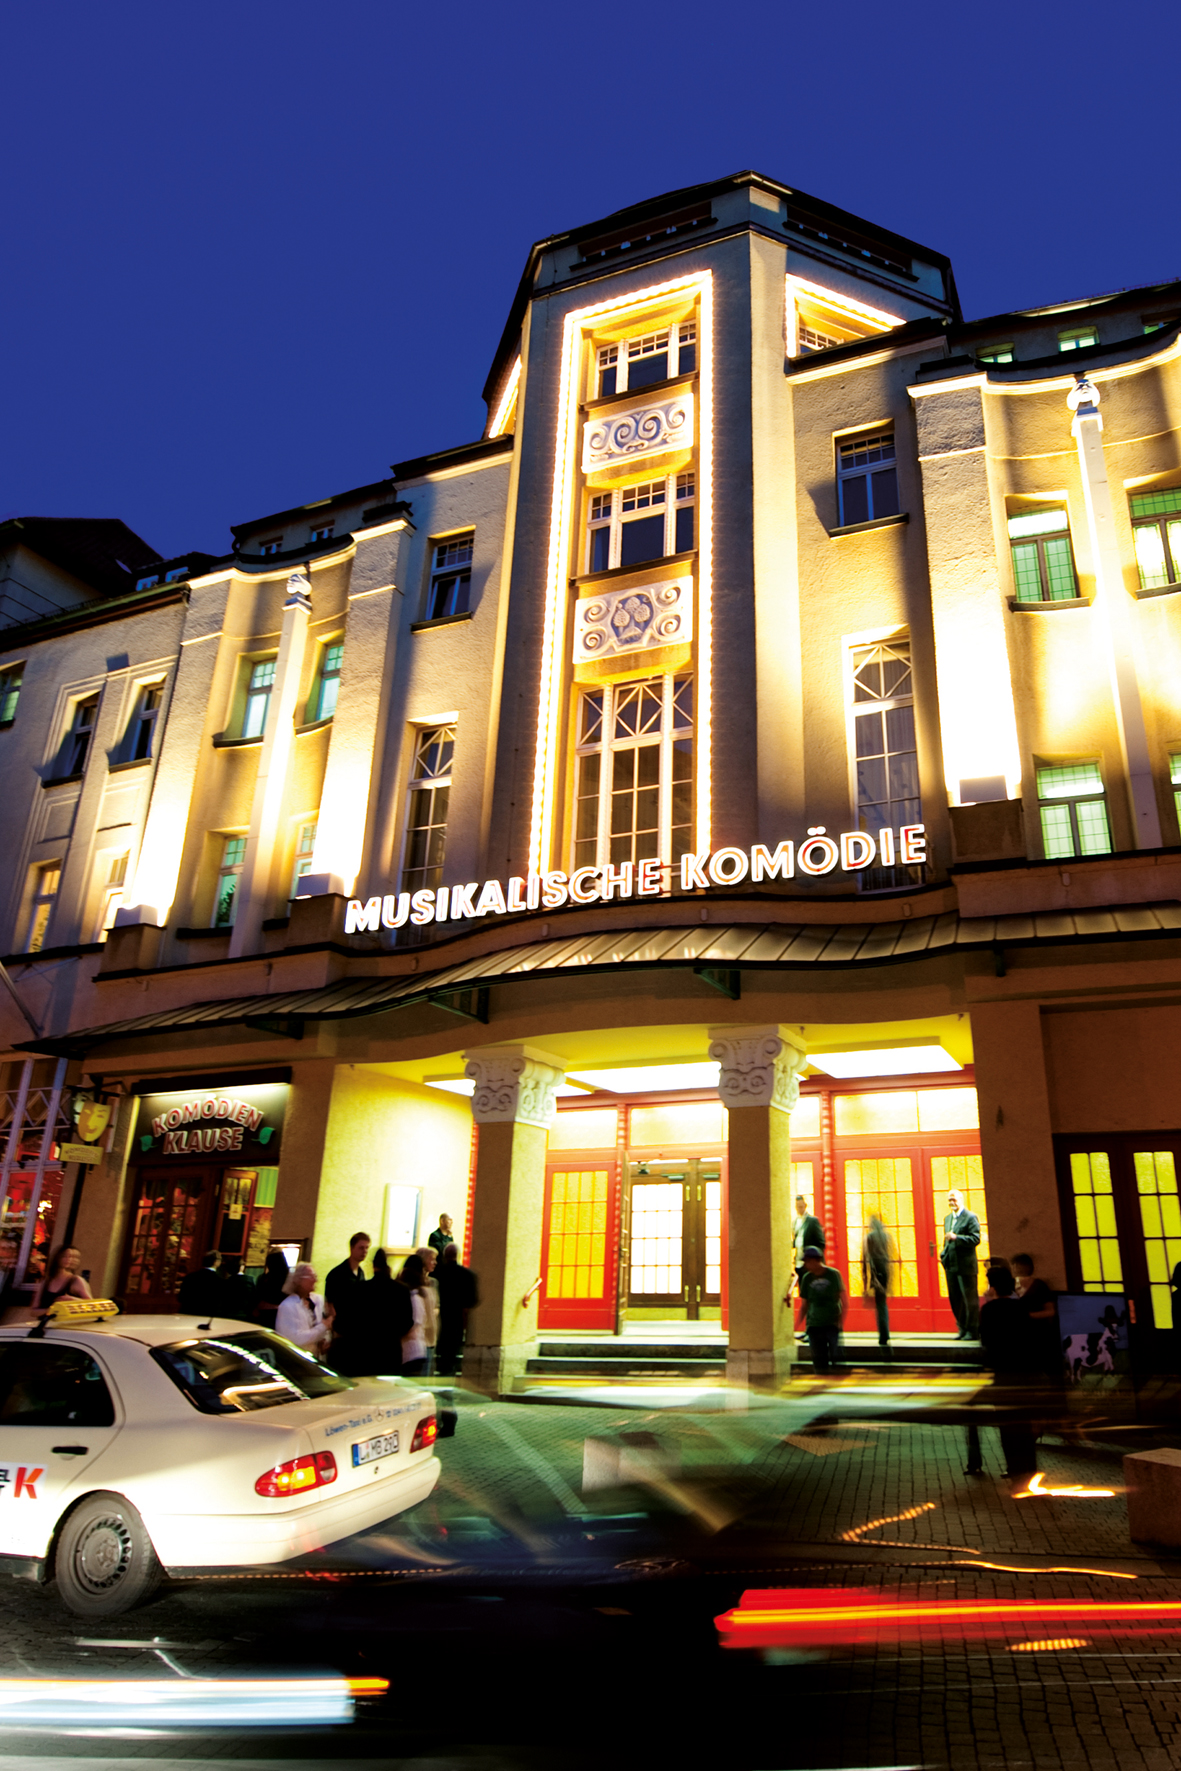 The Musikalische Komödie in Leipzig. (Photo: Dirk Brzoska)